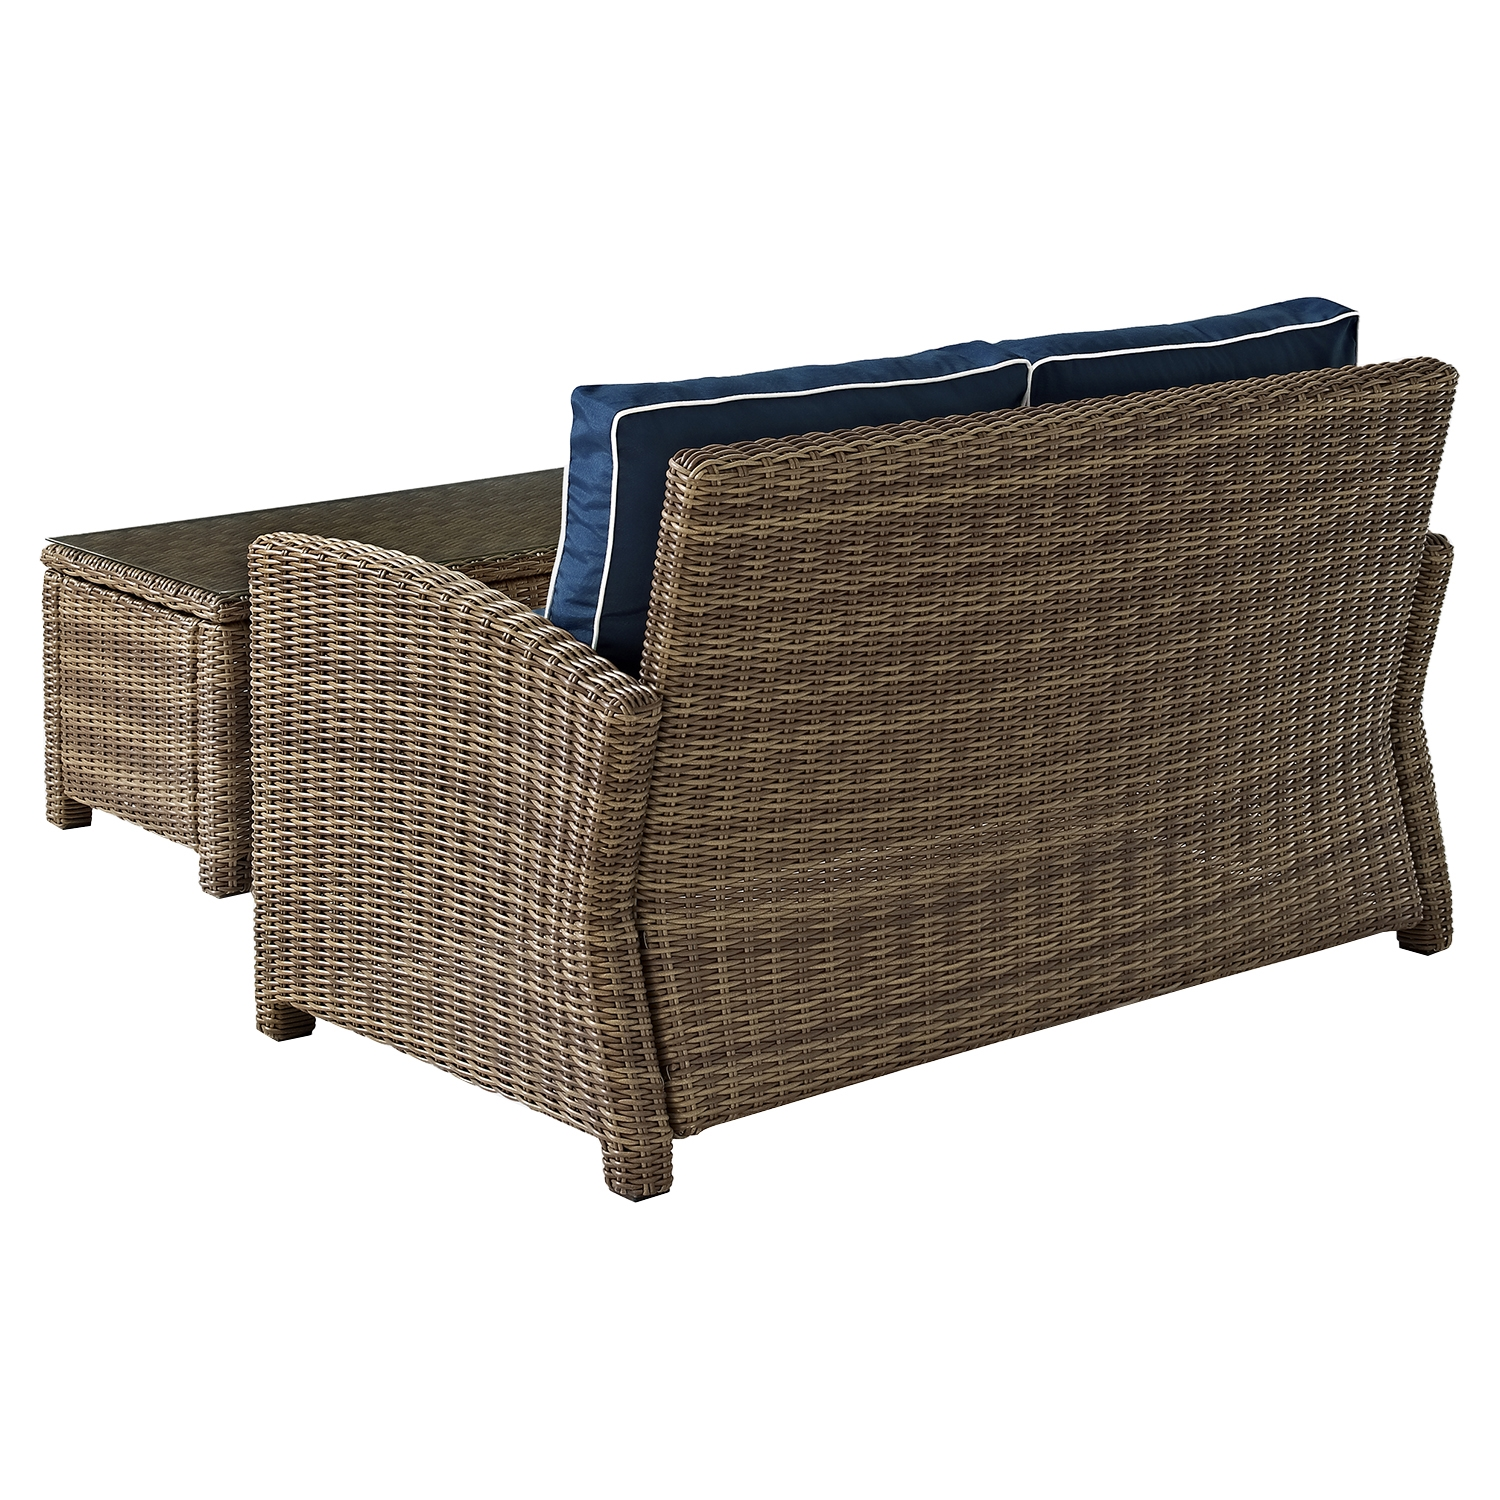 Bradenton Wicker Loveseat and Glass Top Table with Navy Cushions - CROS-KO70025WB-NV